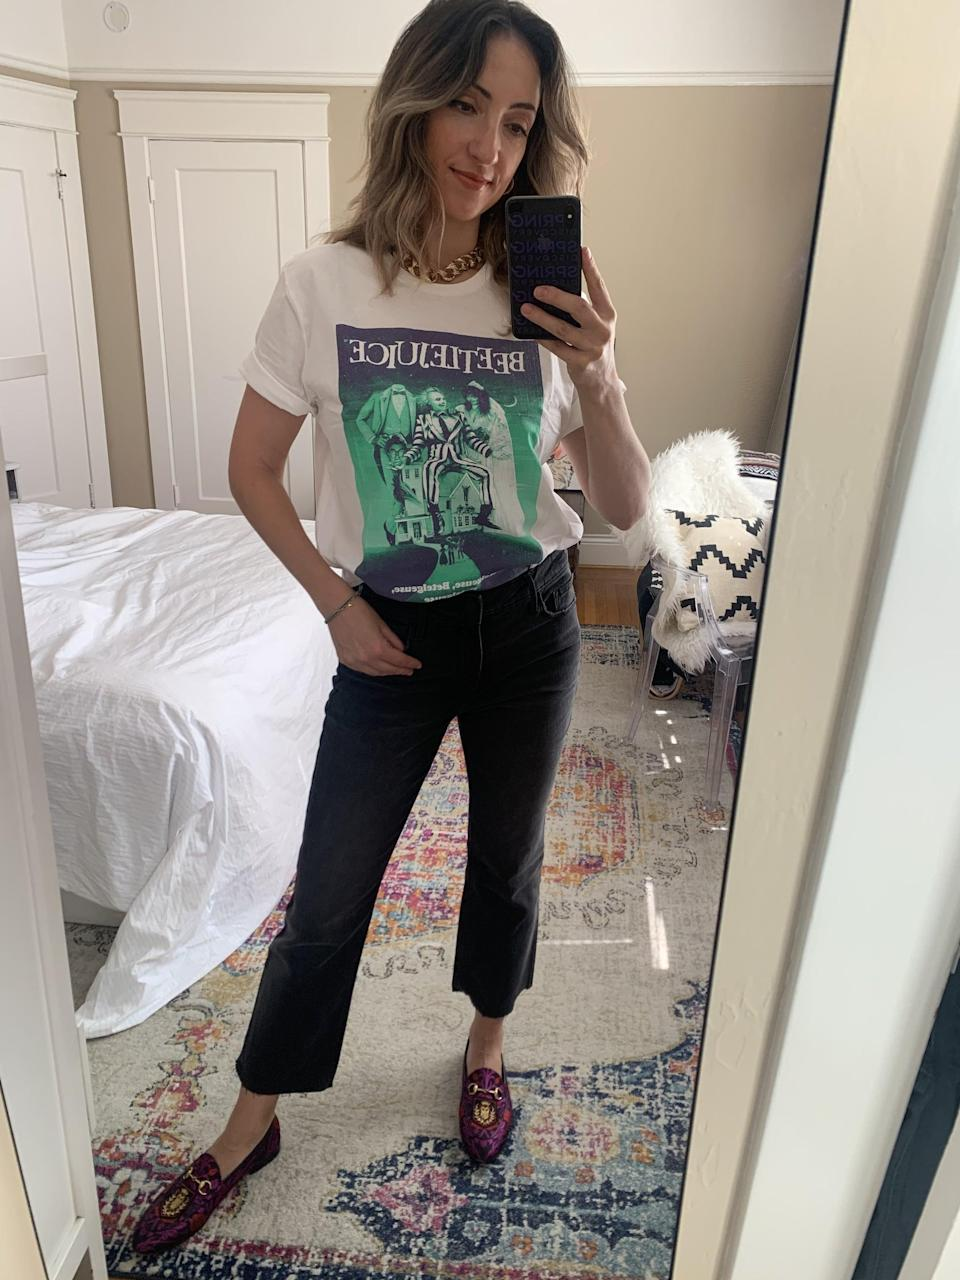 """<p><strong>The item:</strong> <span>Old Navy Beetlejuice t-shirt</span> (Sold Out)</p> <p><strong>What our editor said</strong>: """"I wanted something comfortable, loose-fitting, and maybe a little moody, too. It didn't take long for me to find it at Old Navy. The Beetlejuice tee had everything I was looking for."""" - RB </p> <p>If you want to read more, here is the <a href=""""http://www.popsugar.com/fashion/beetlejuice-t-shirt-for-women-47817822"""" class=""""link rapid-noclick-resp"""" rel=""""nofollow noopener"""" target=""""_blank"""" data-ylk=""""slk:complete review"""">complete review</a>.</p>"""